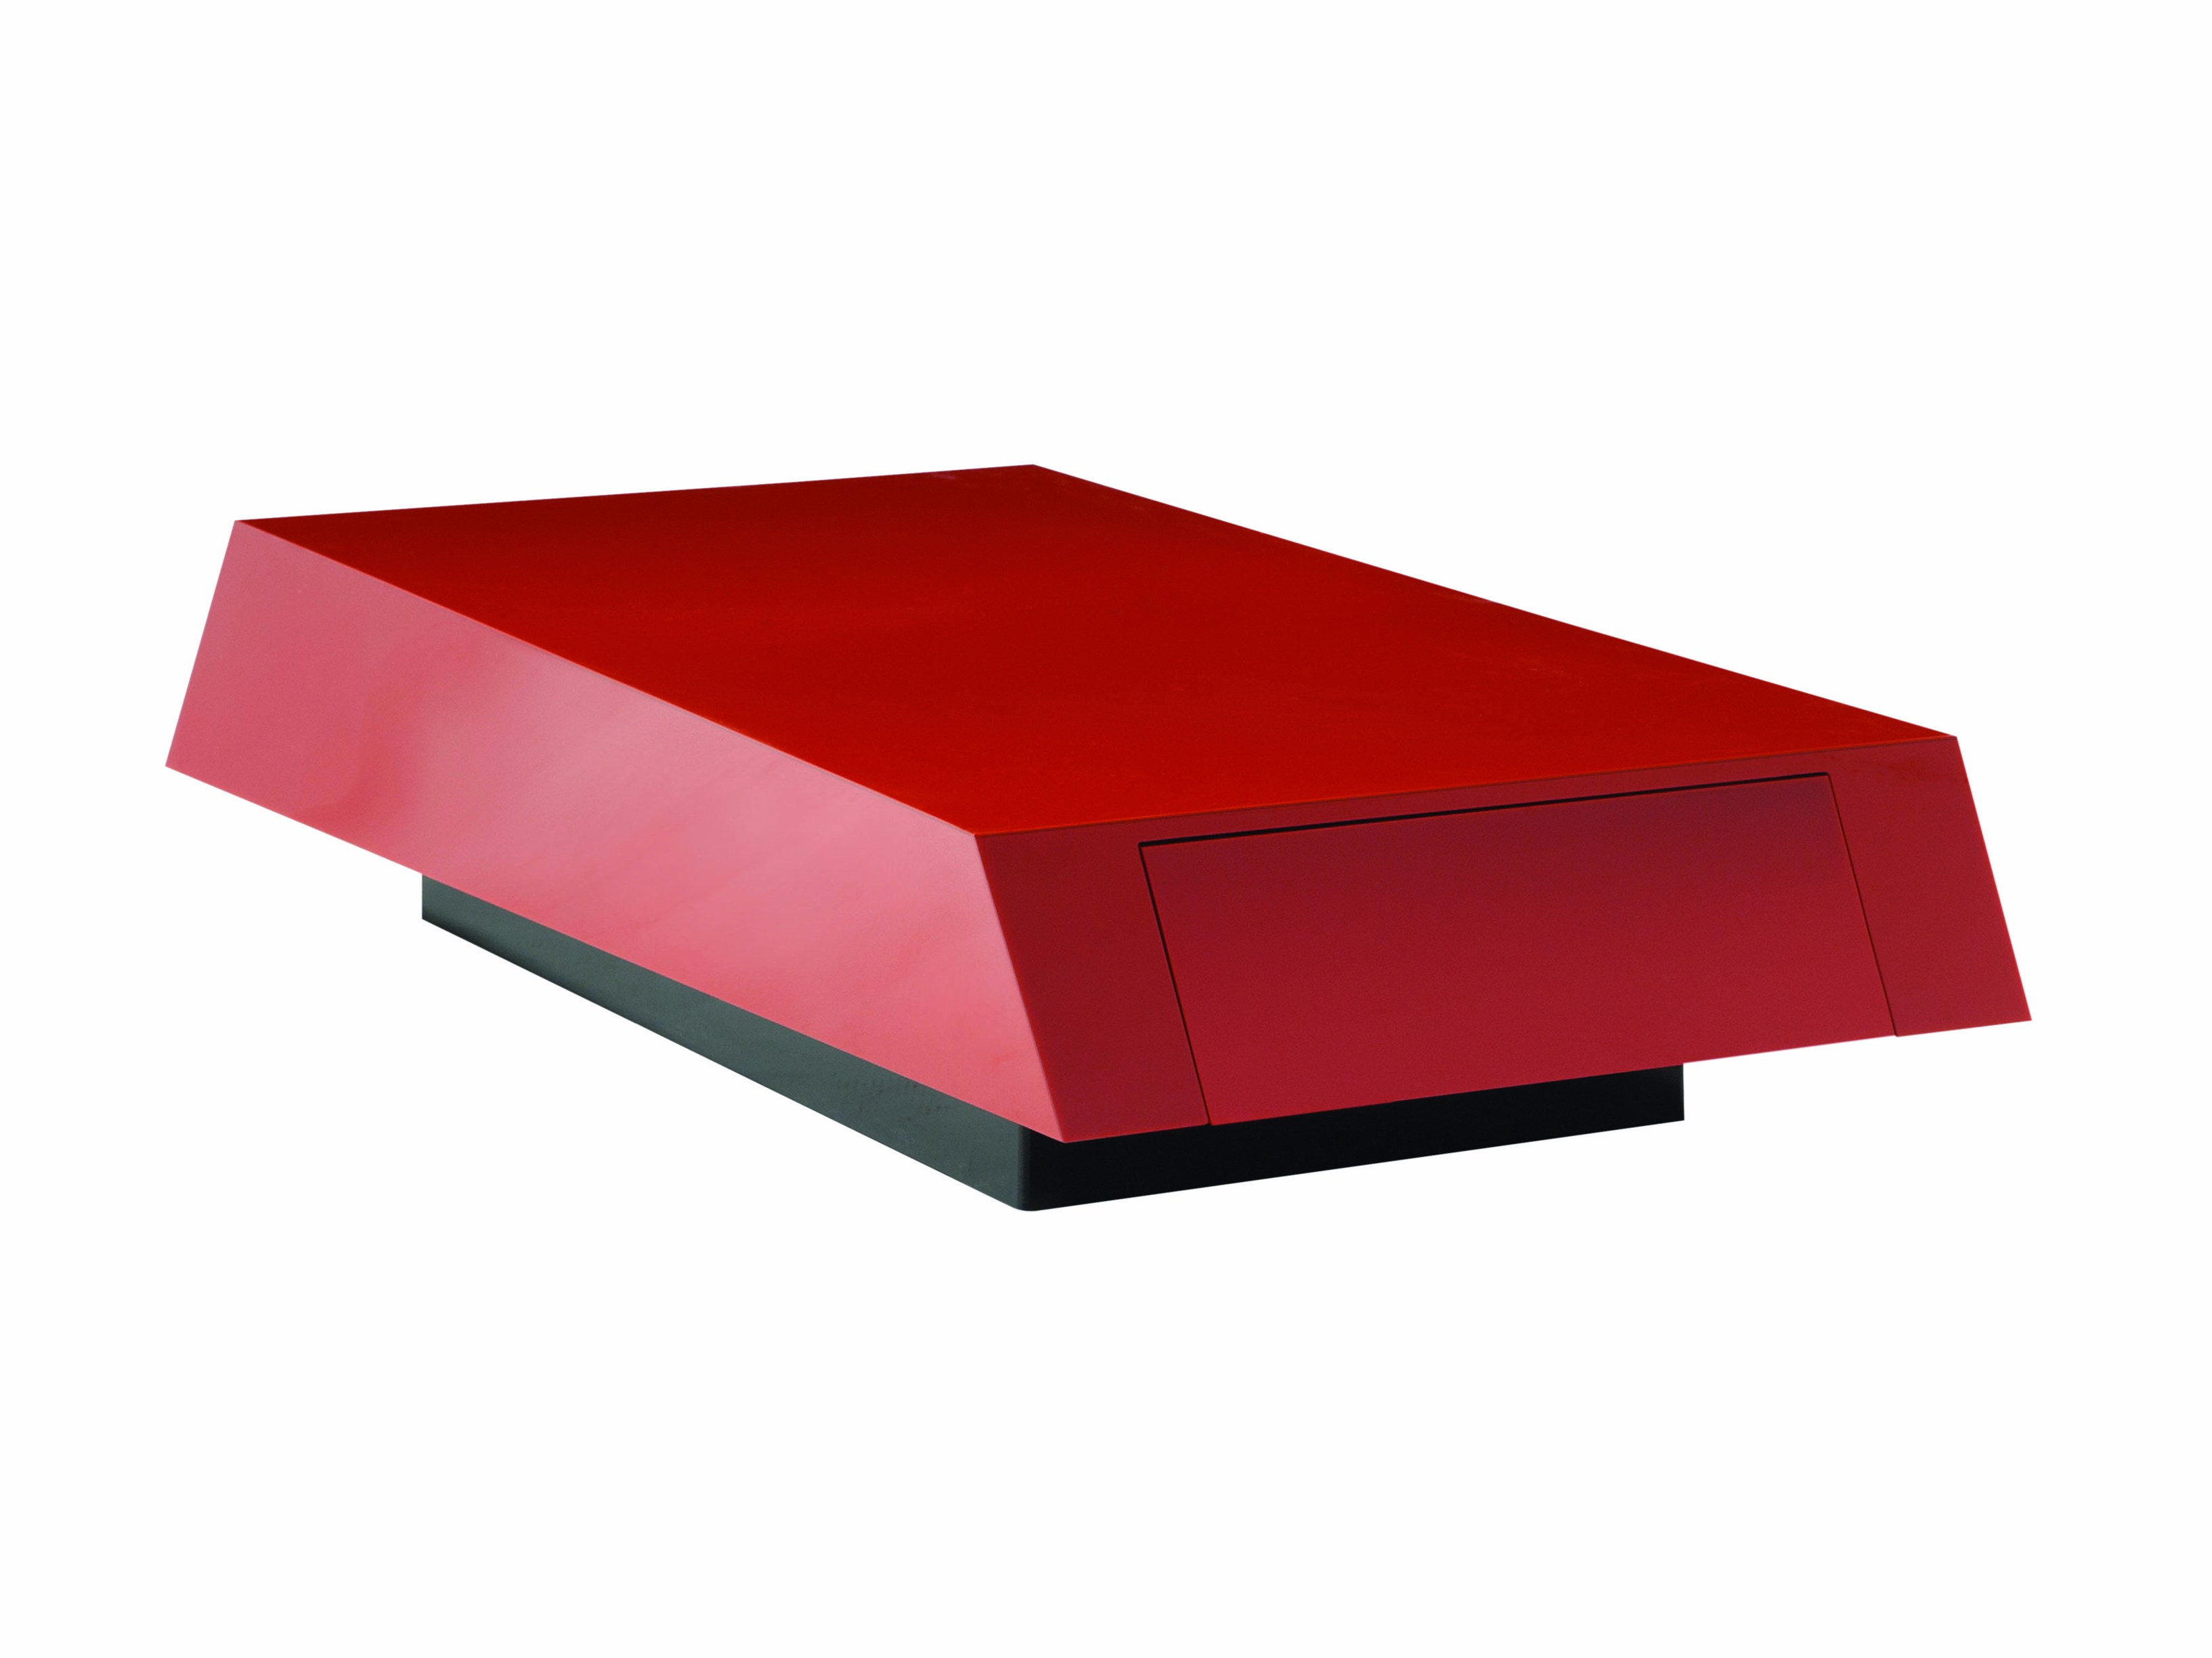 Helis Table Basse By Roche Bobois Design Erwan Peron